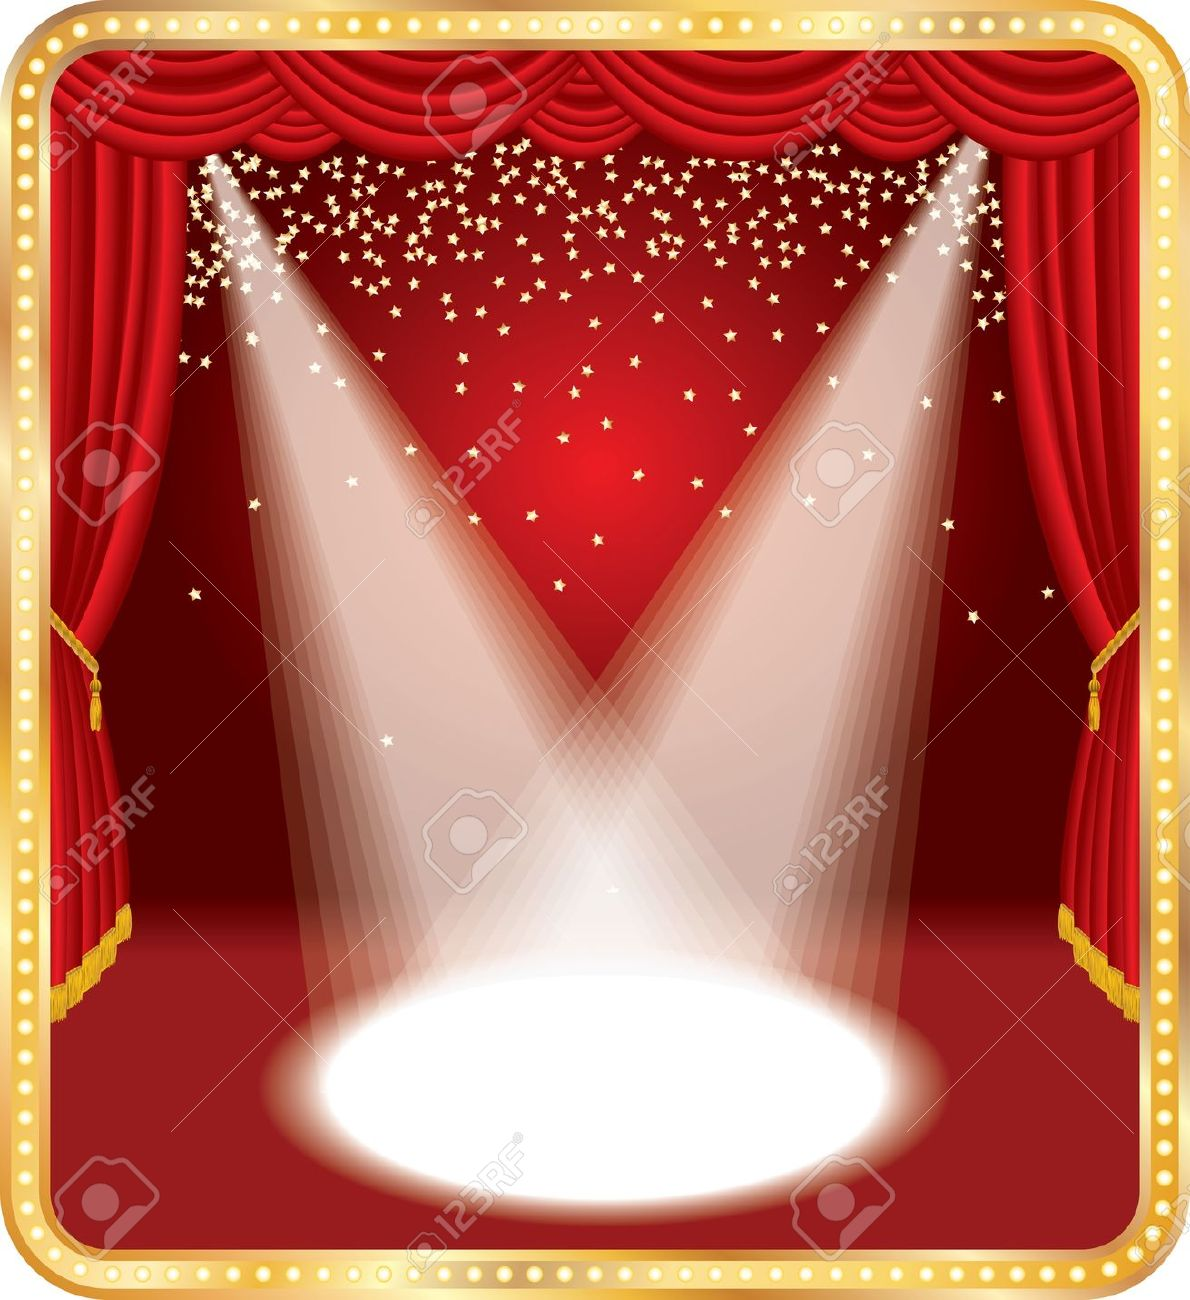 Broadway Theatre Clipart.